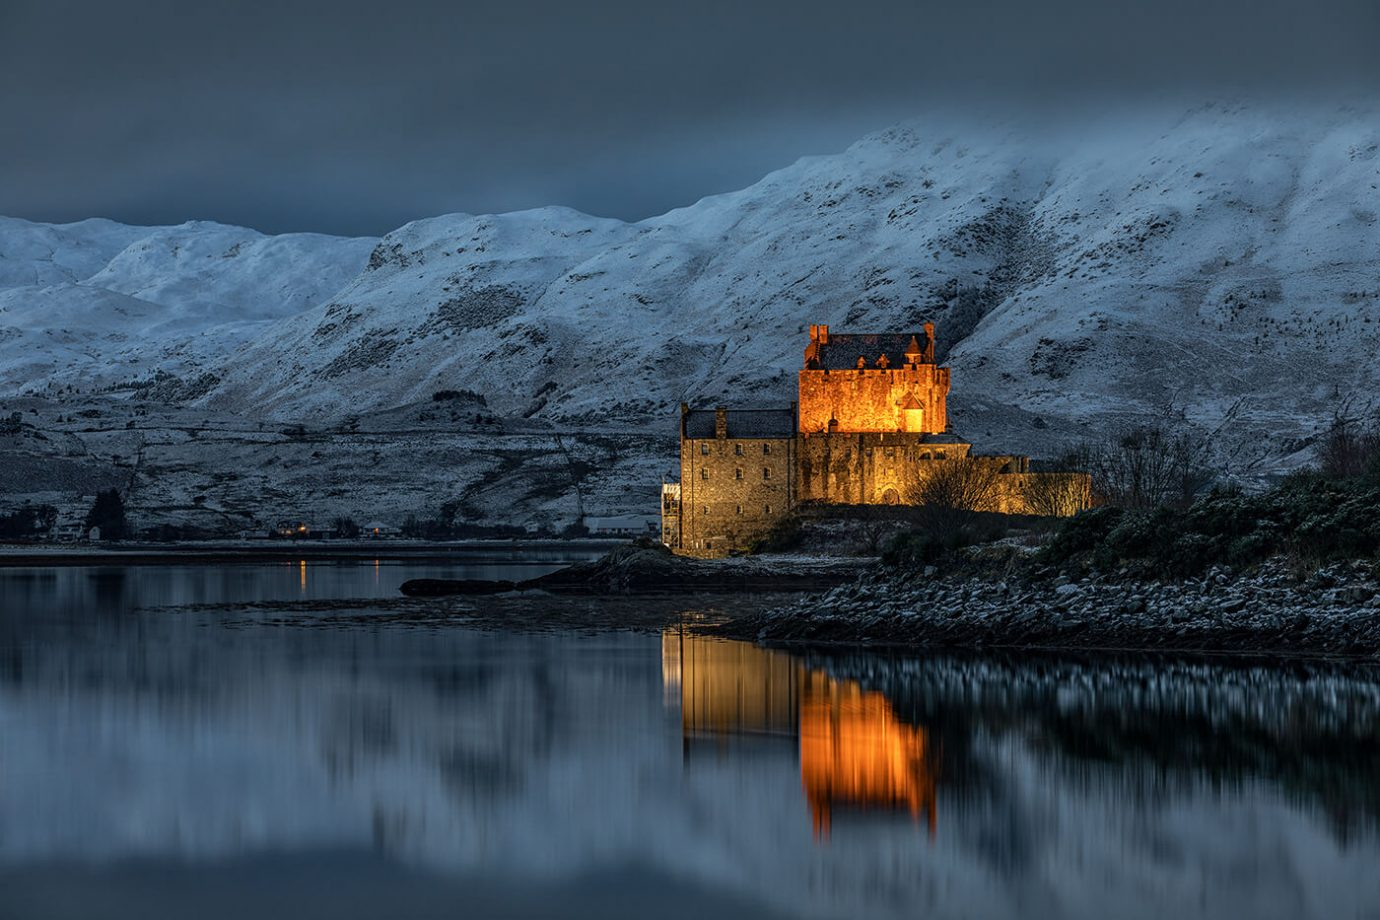 Dusk over Eilean Donan Castle, Kyle of Lochalsh, Scotland